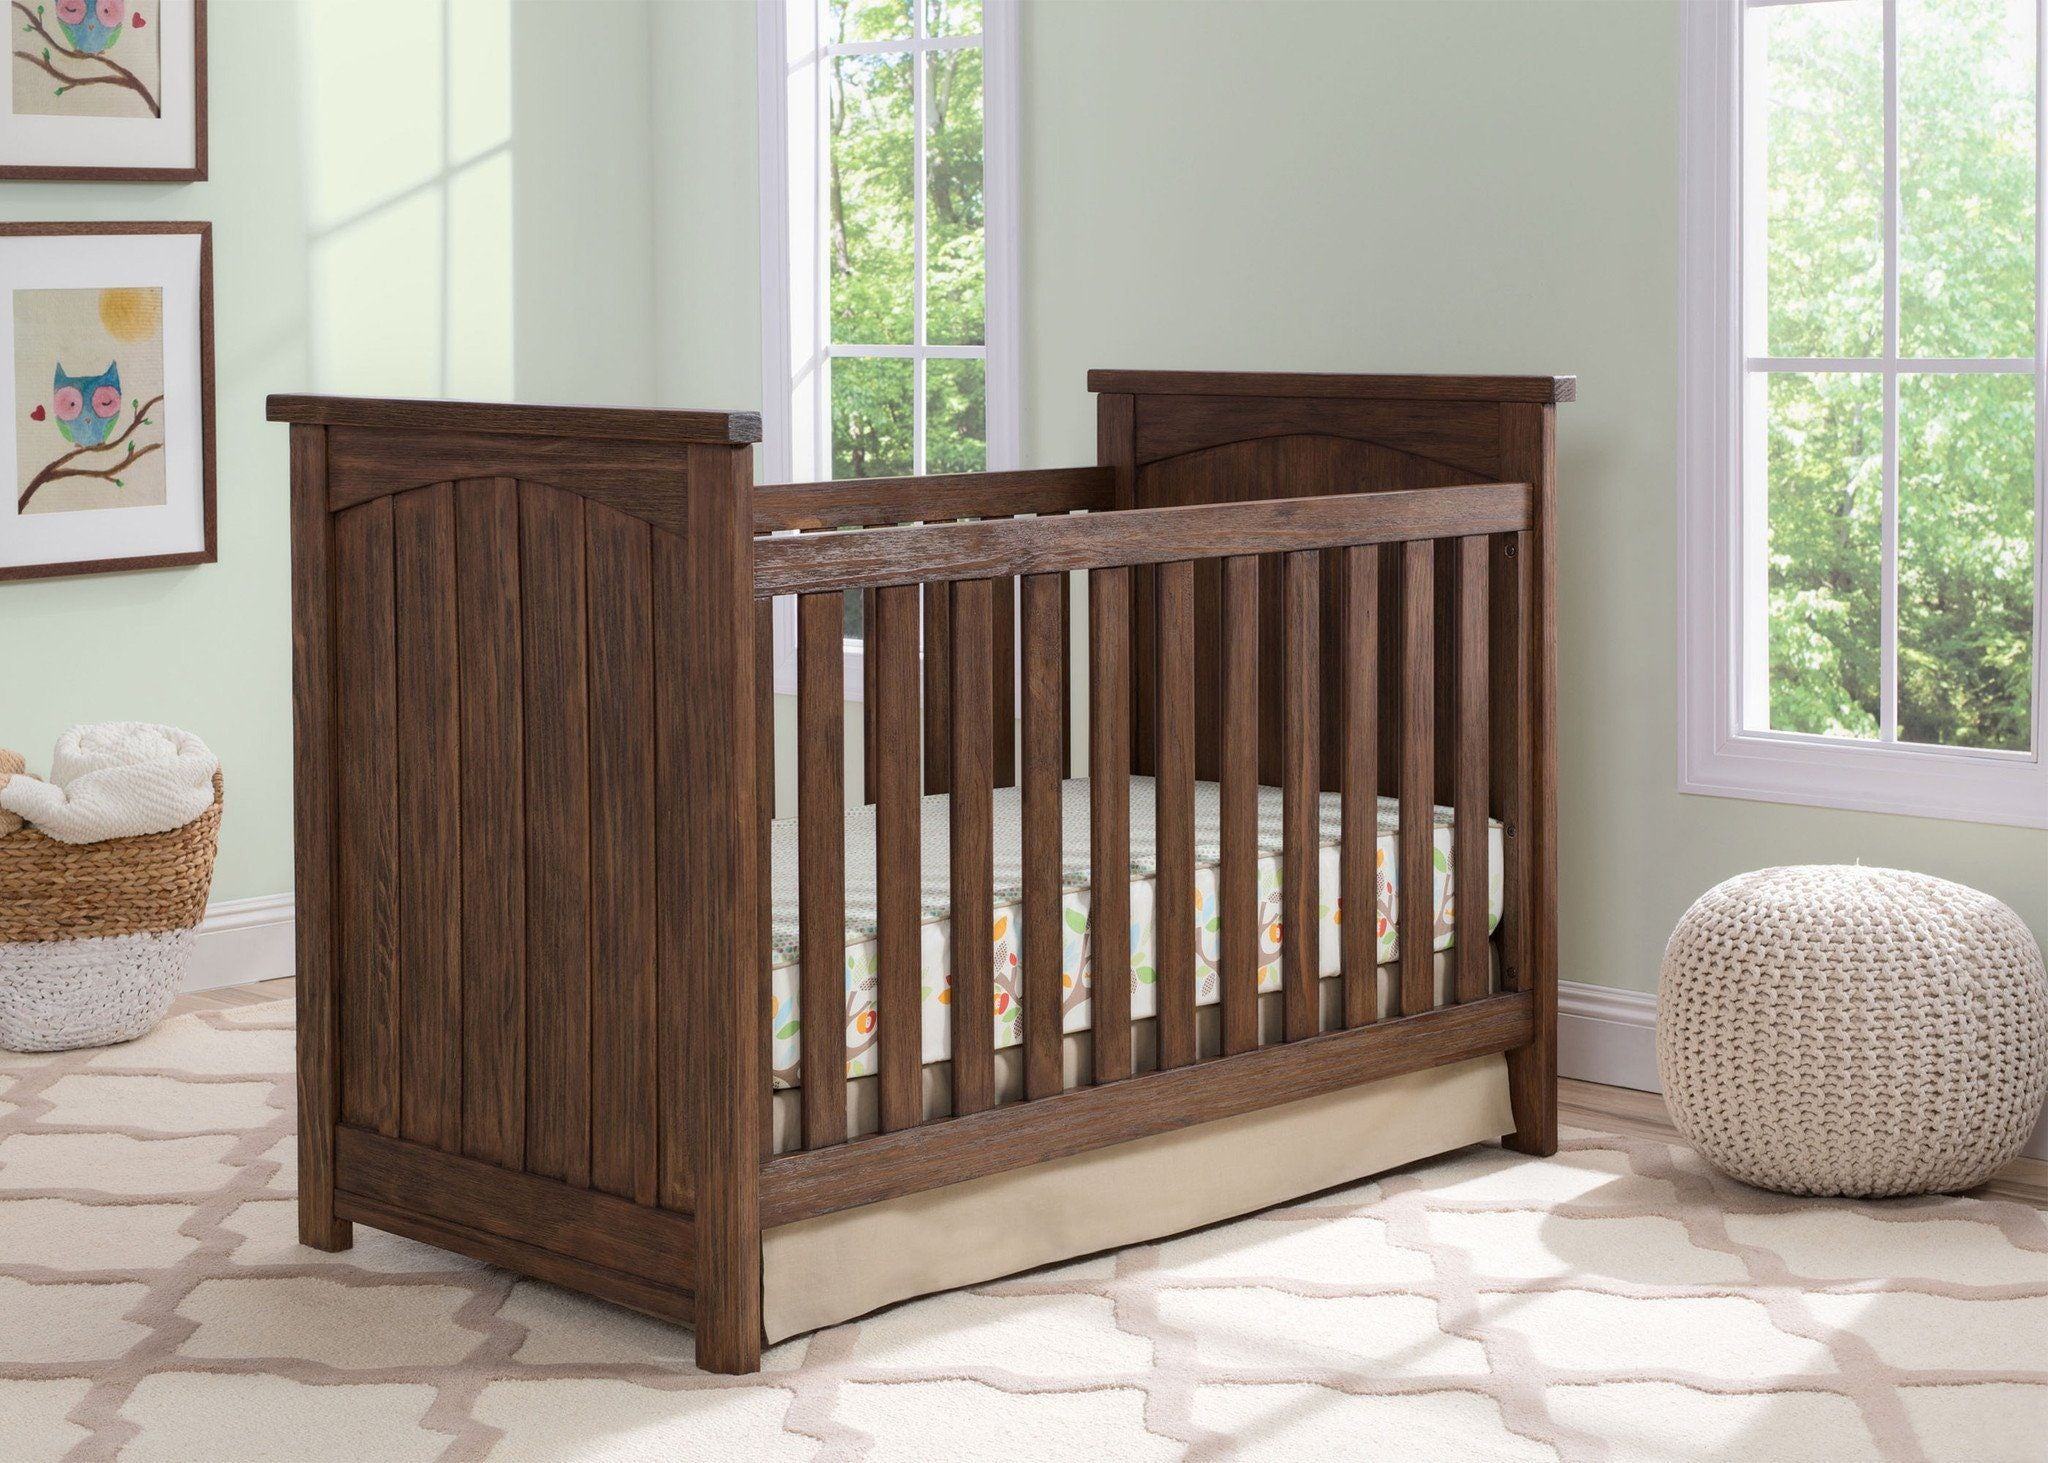 Serta Rustic Oak (229) Northbrook 3-in-1 Crib Hangtag View b1b